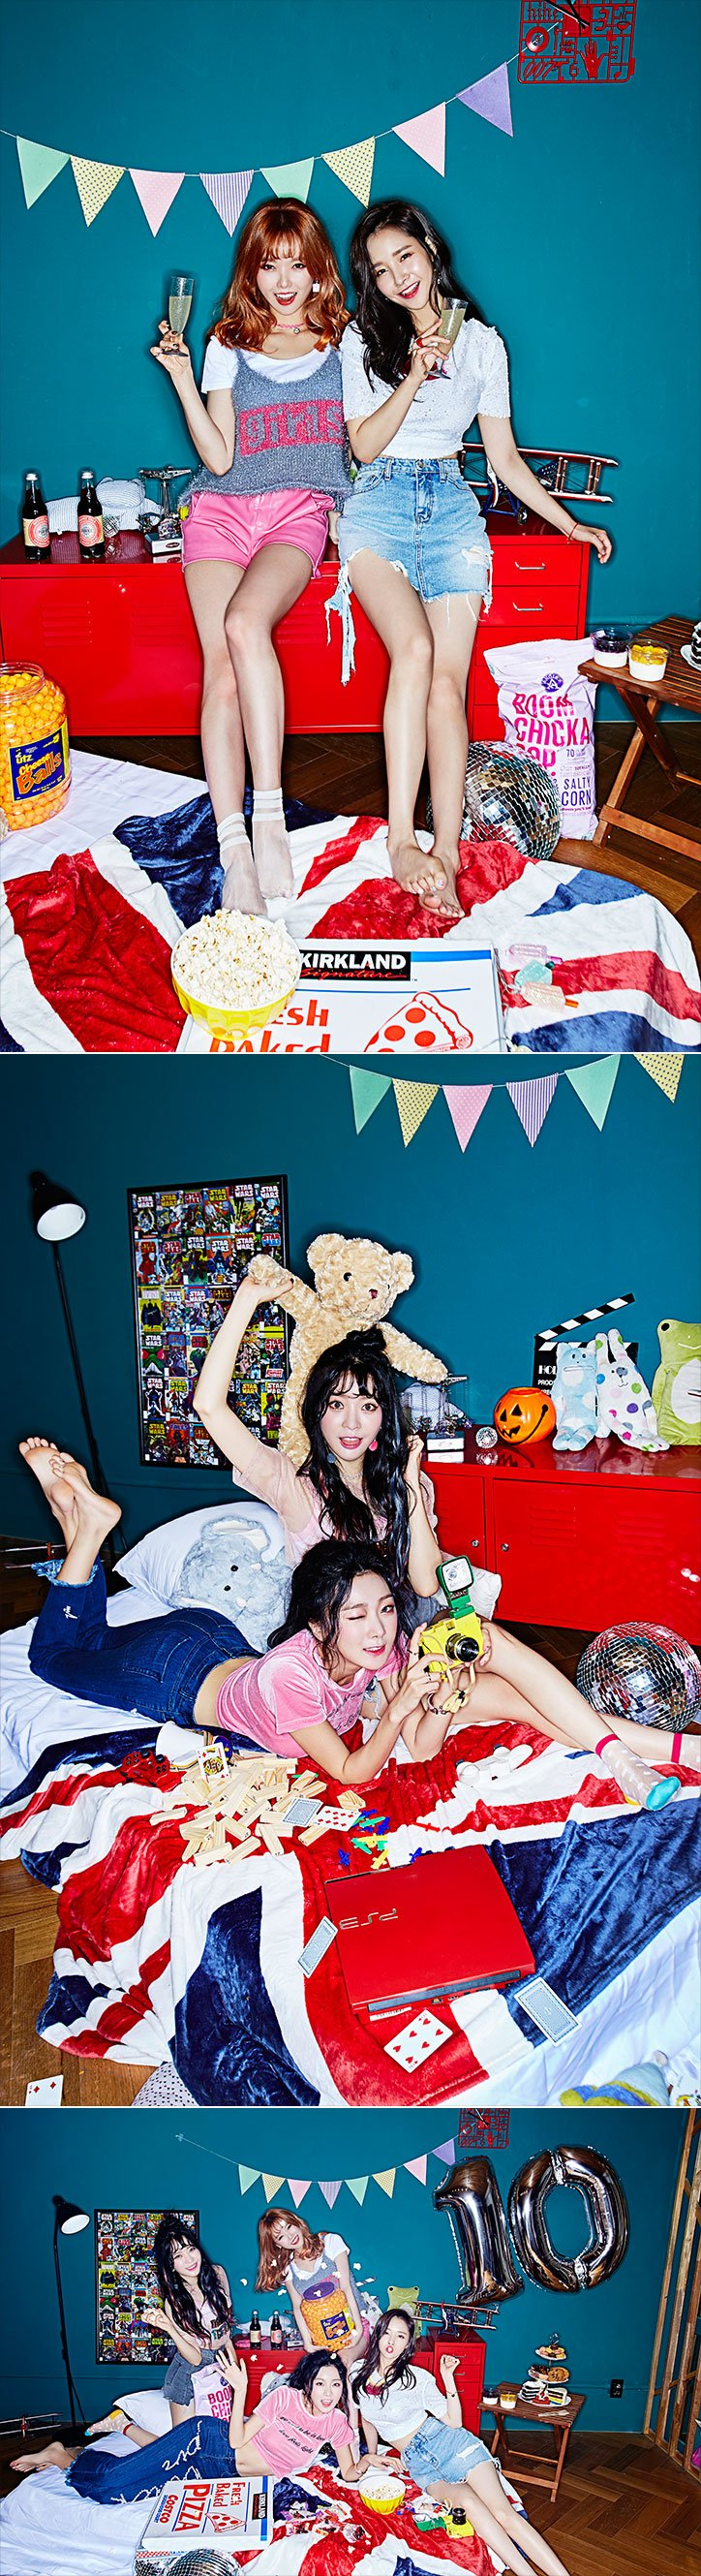 Image: 'Weekend' image teasers for Dalshabet / Happy Face Entertainment